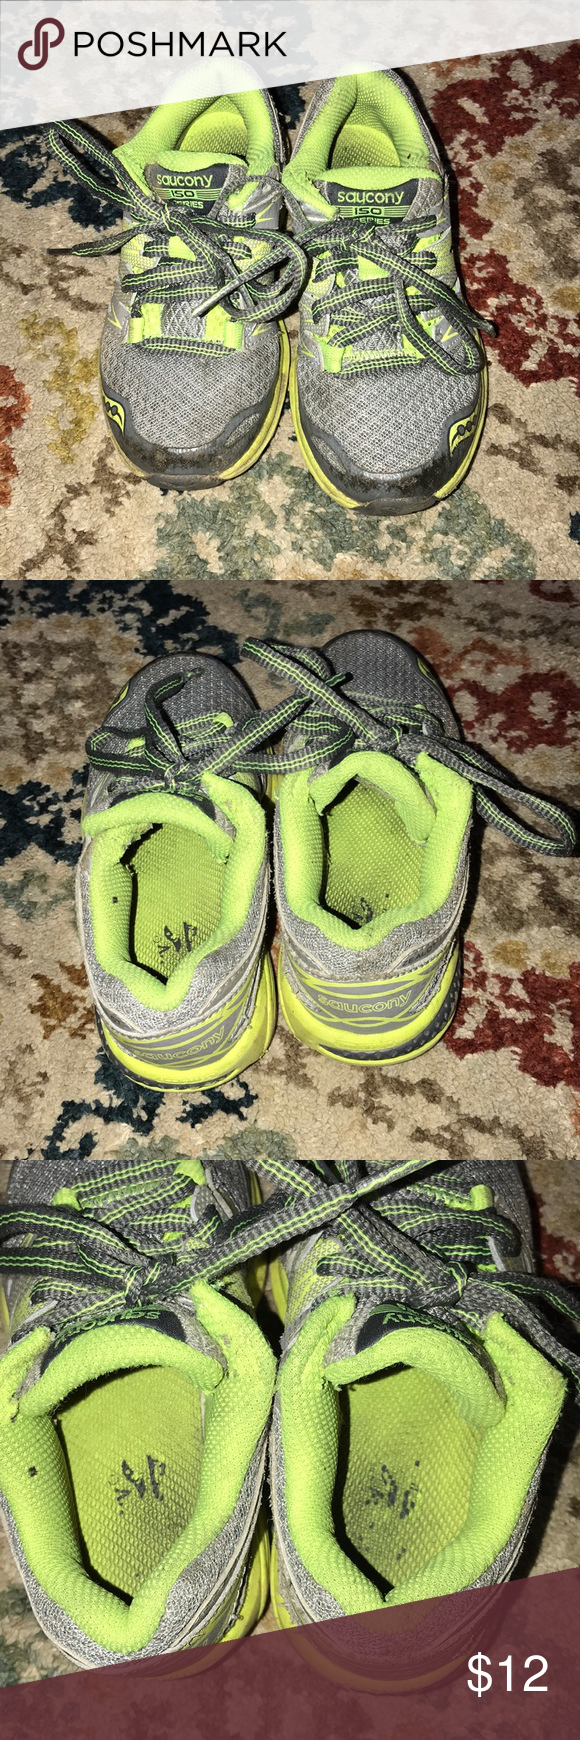 Saucony Iso Series Tennis Shoes Toddler Boys 10 5 Zealot 2 Saucony Iso Fit Series Toddler Boys Size 10 5 Good Used Condition With Images Tennis Shoes Saucony Toddler Boys